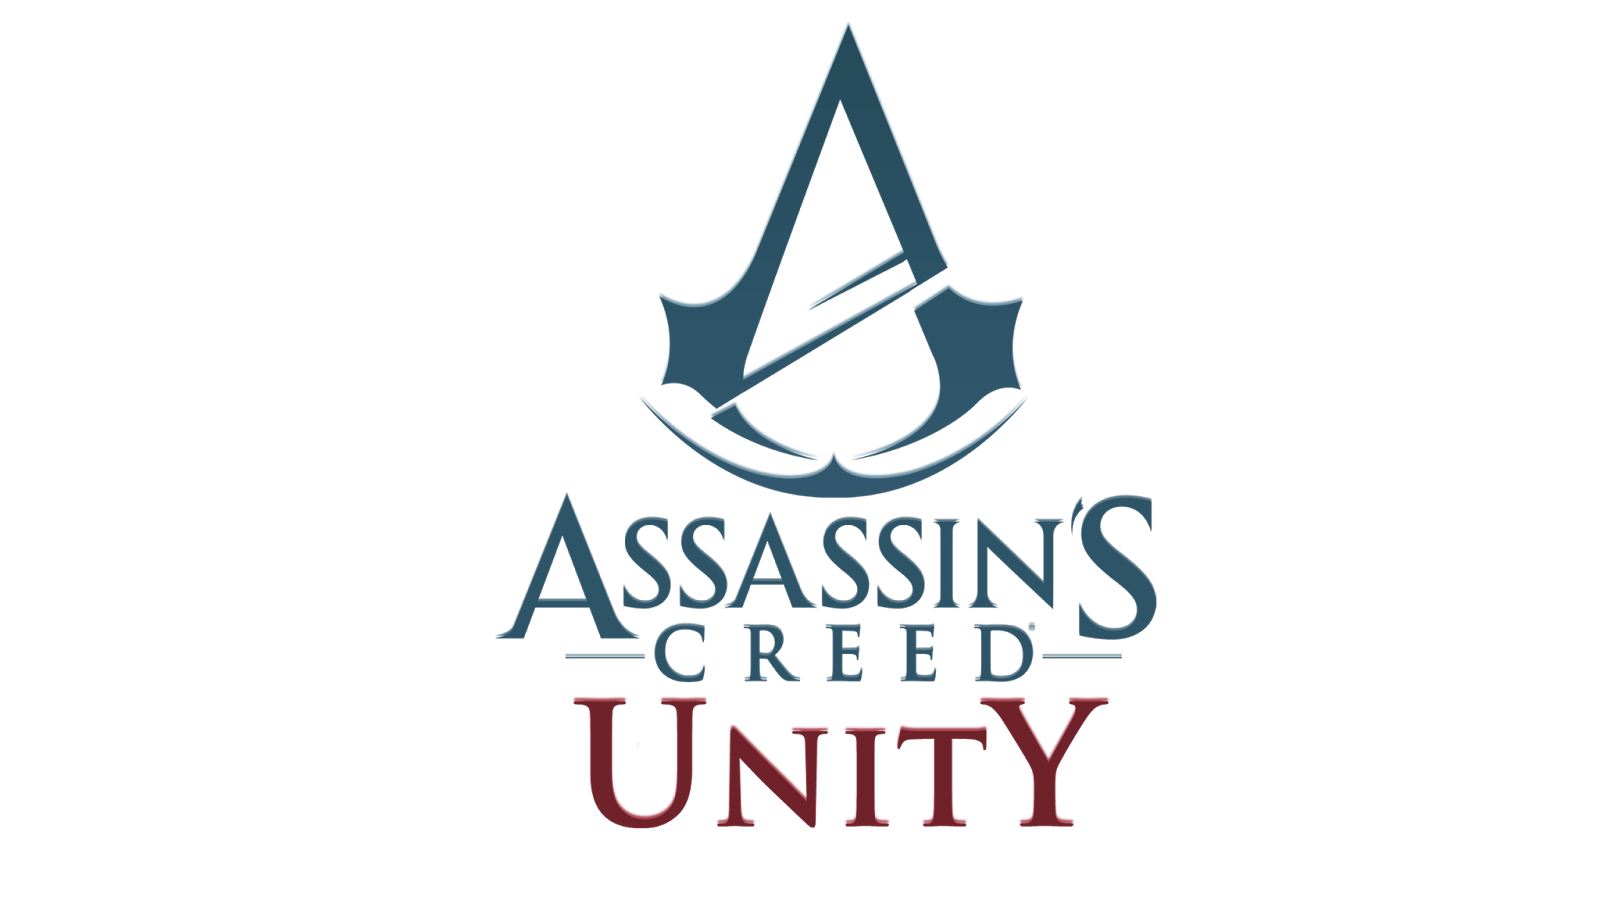 Assassin S Creed Unity Announced For October 28 In Us